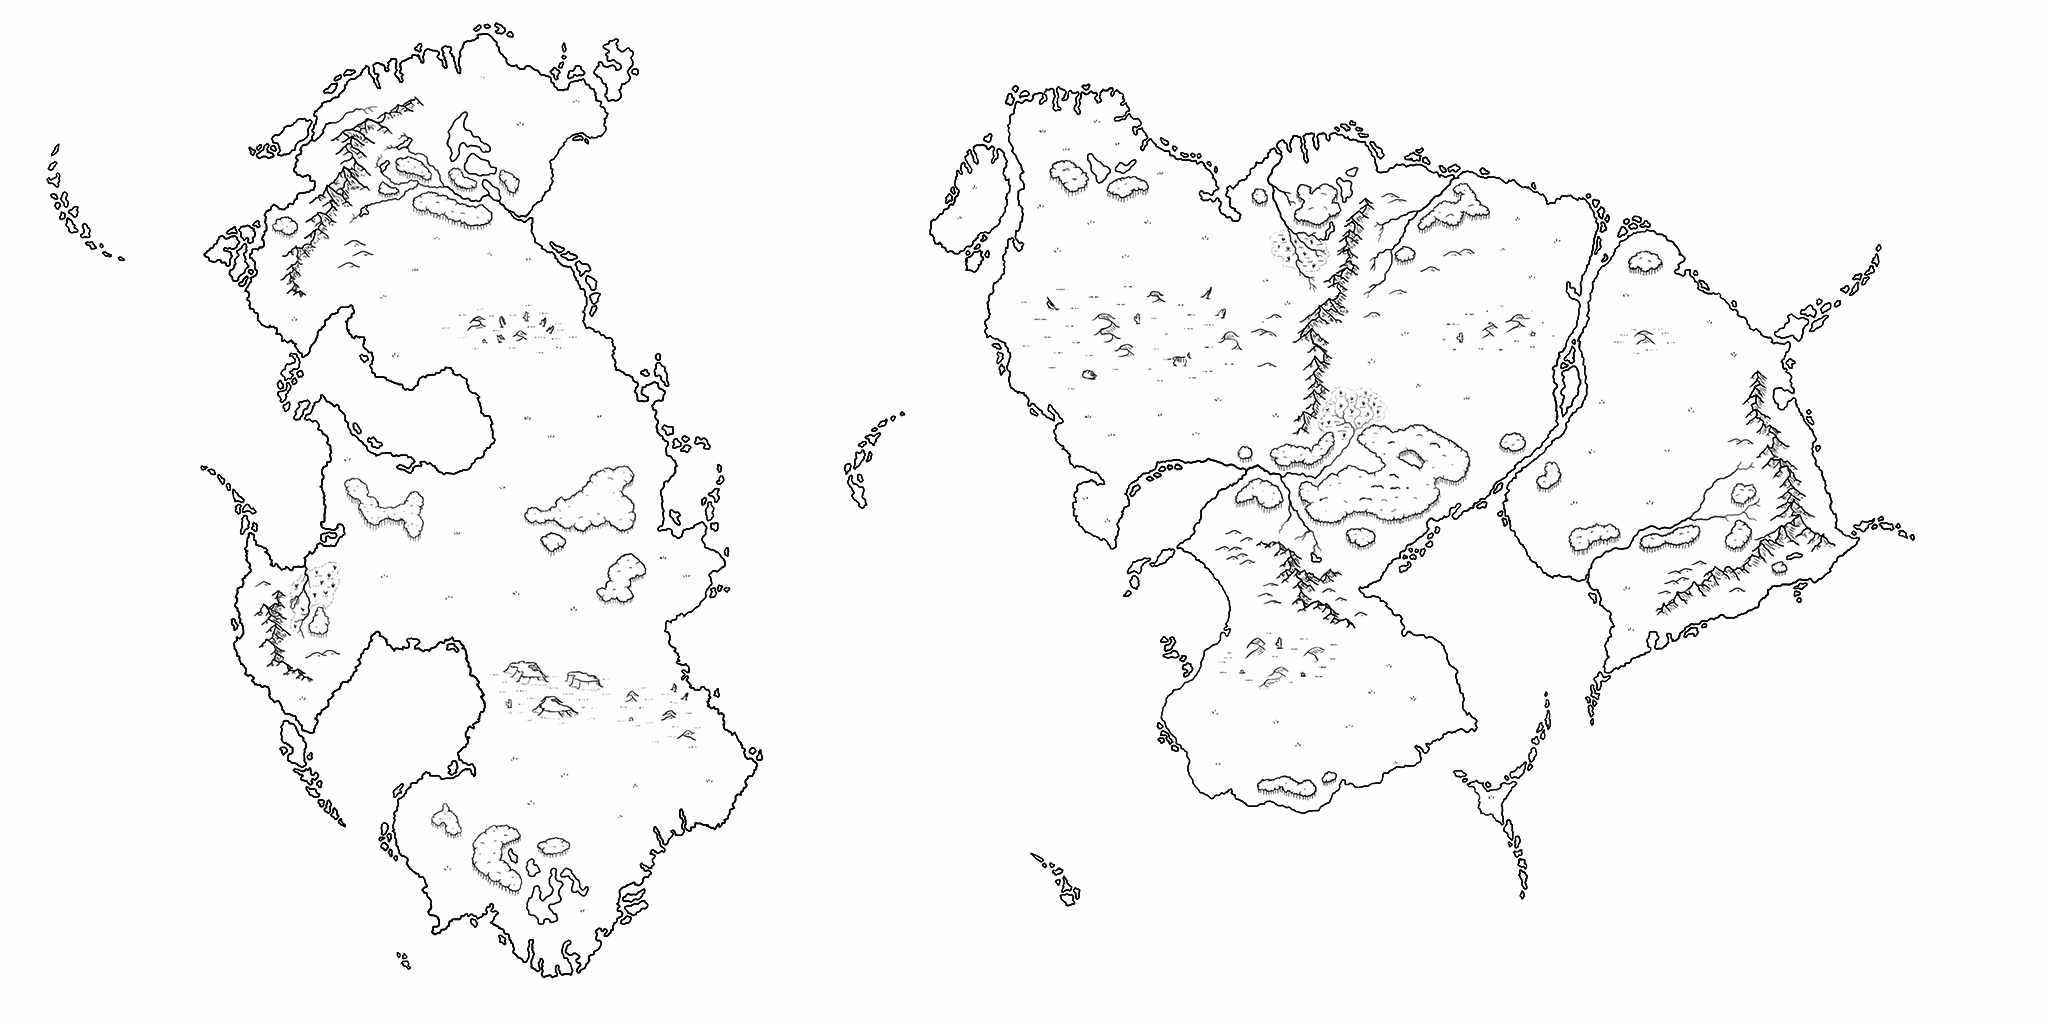 how to draw forests on a map